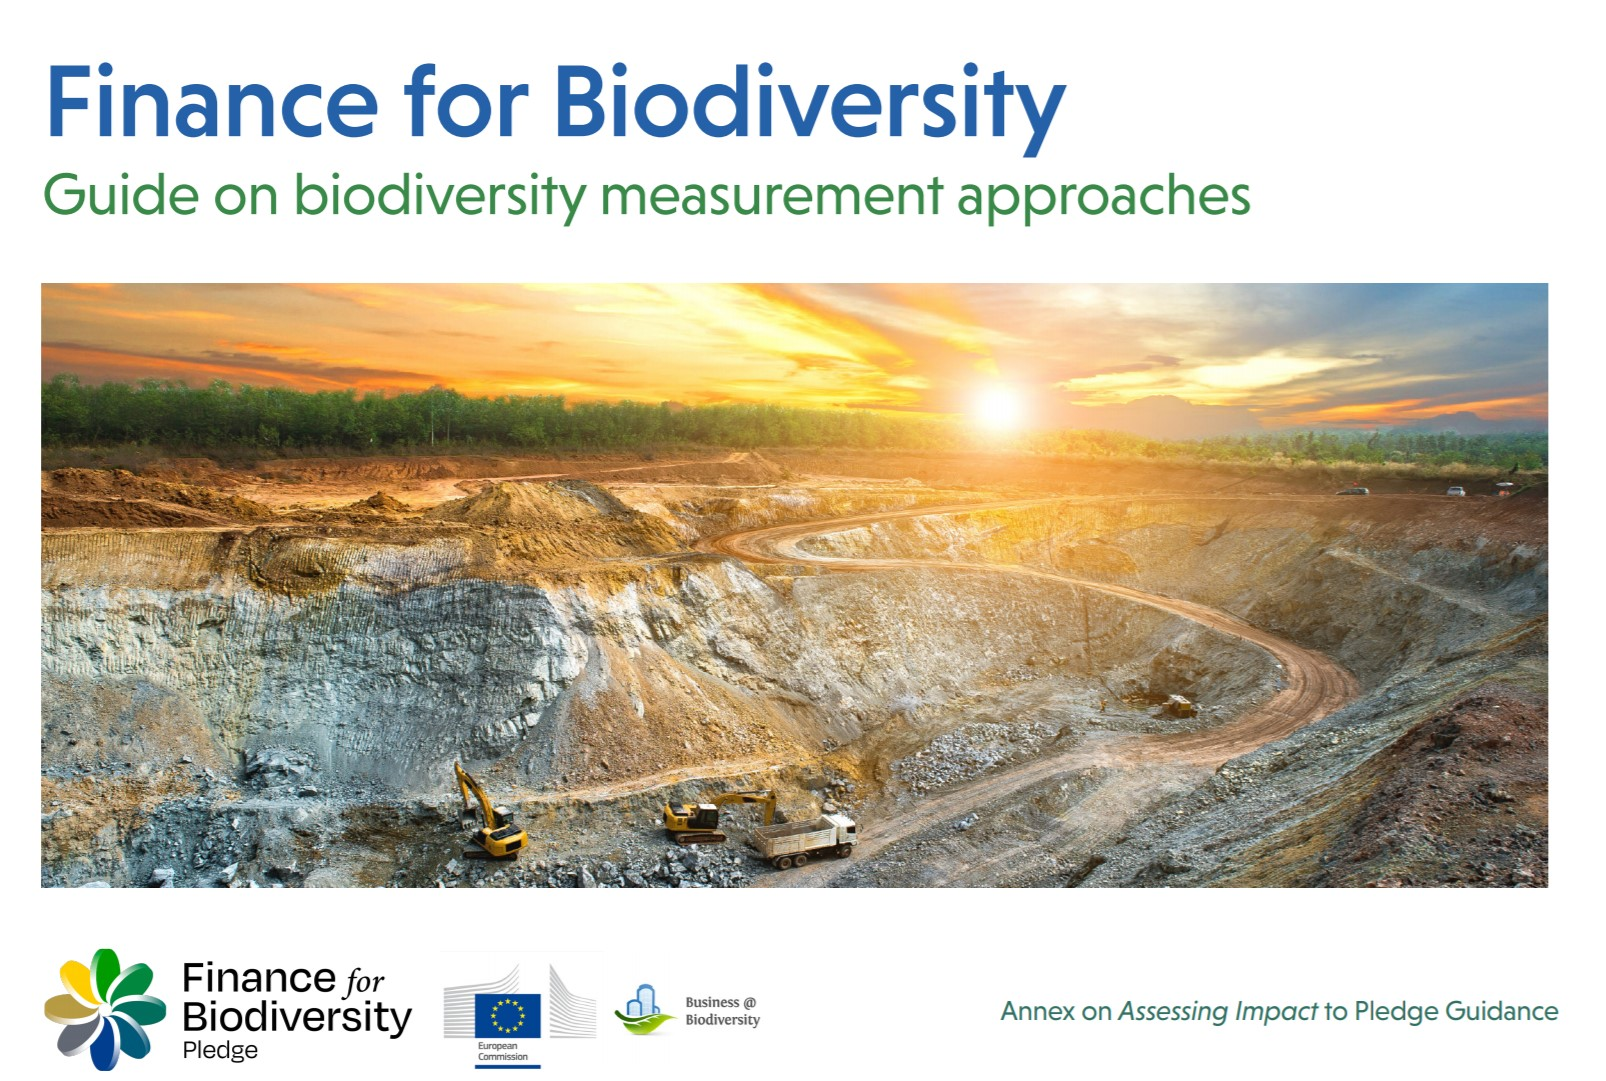 Finance for Biodiversity Pledge signatories launch comprehensive guide on various approaches to measuring biodiversity